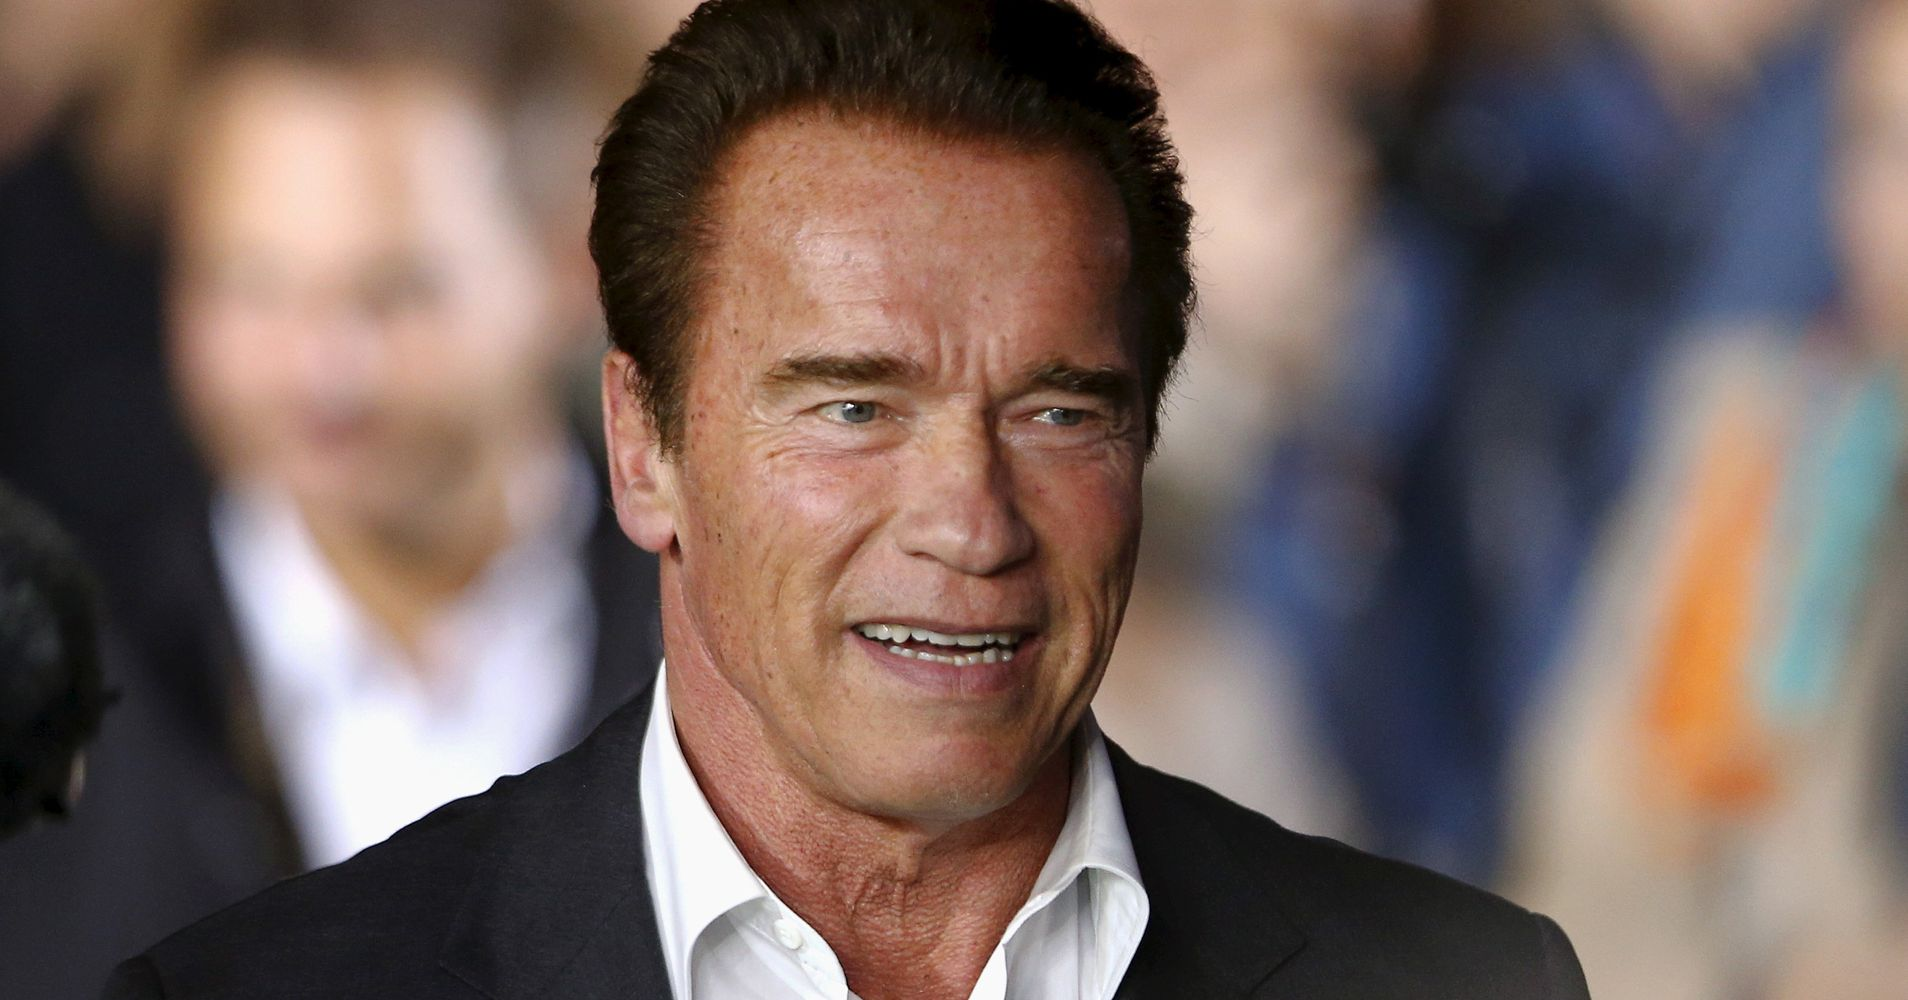 Arnold Schwarzenegger Donates $100,000 To Anti-Hate Group After Charlottesville Violence